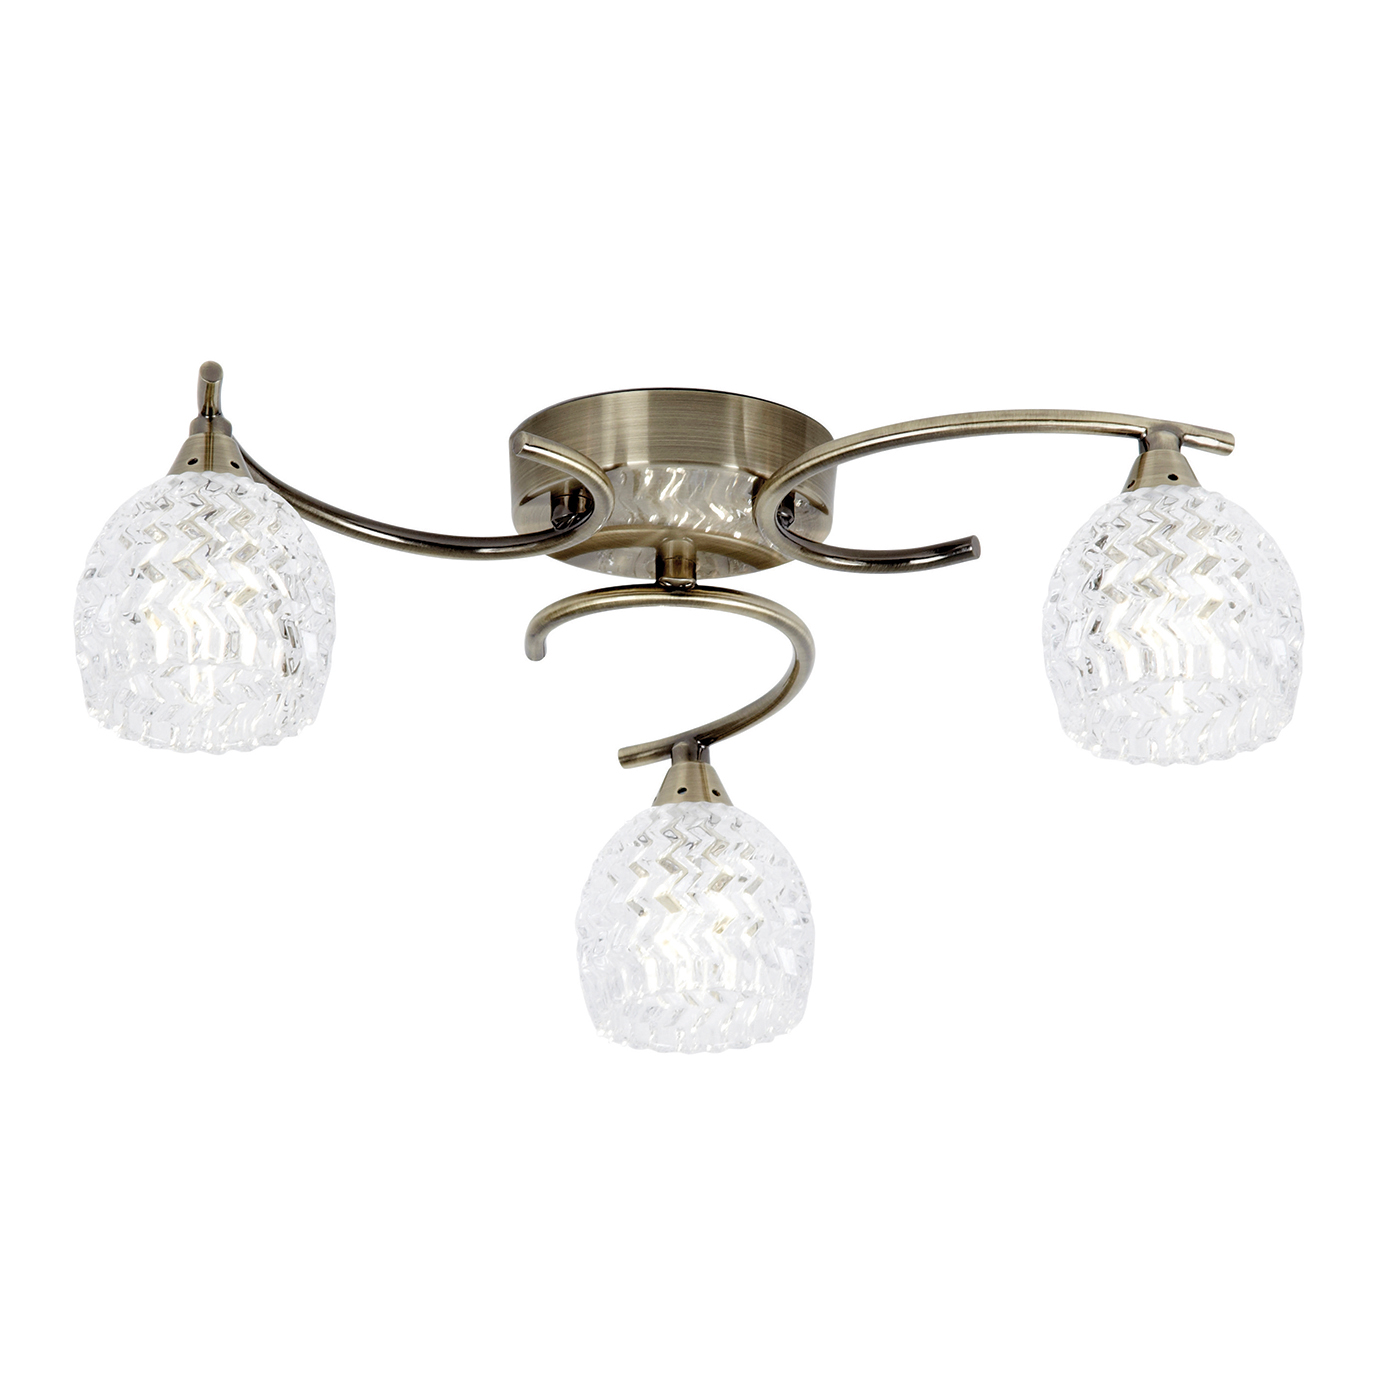 Endon Boyer ceiling light 3x 33W Antique brass effect clear glass pattern detail